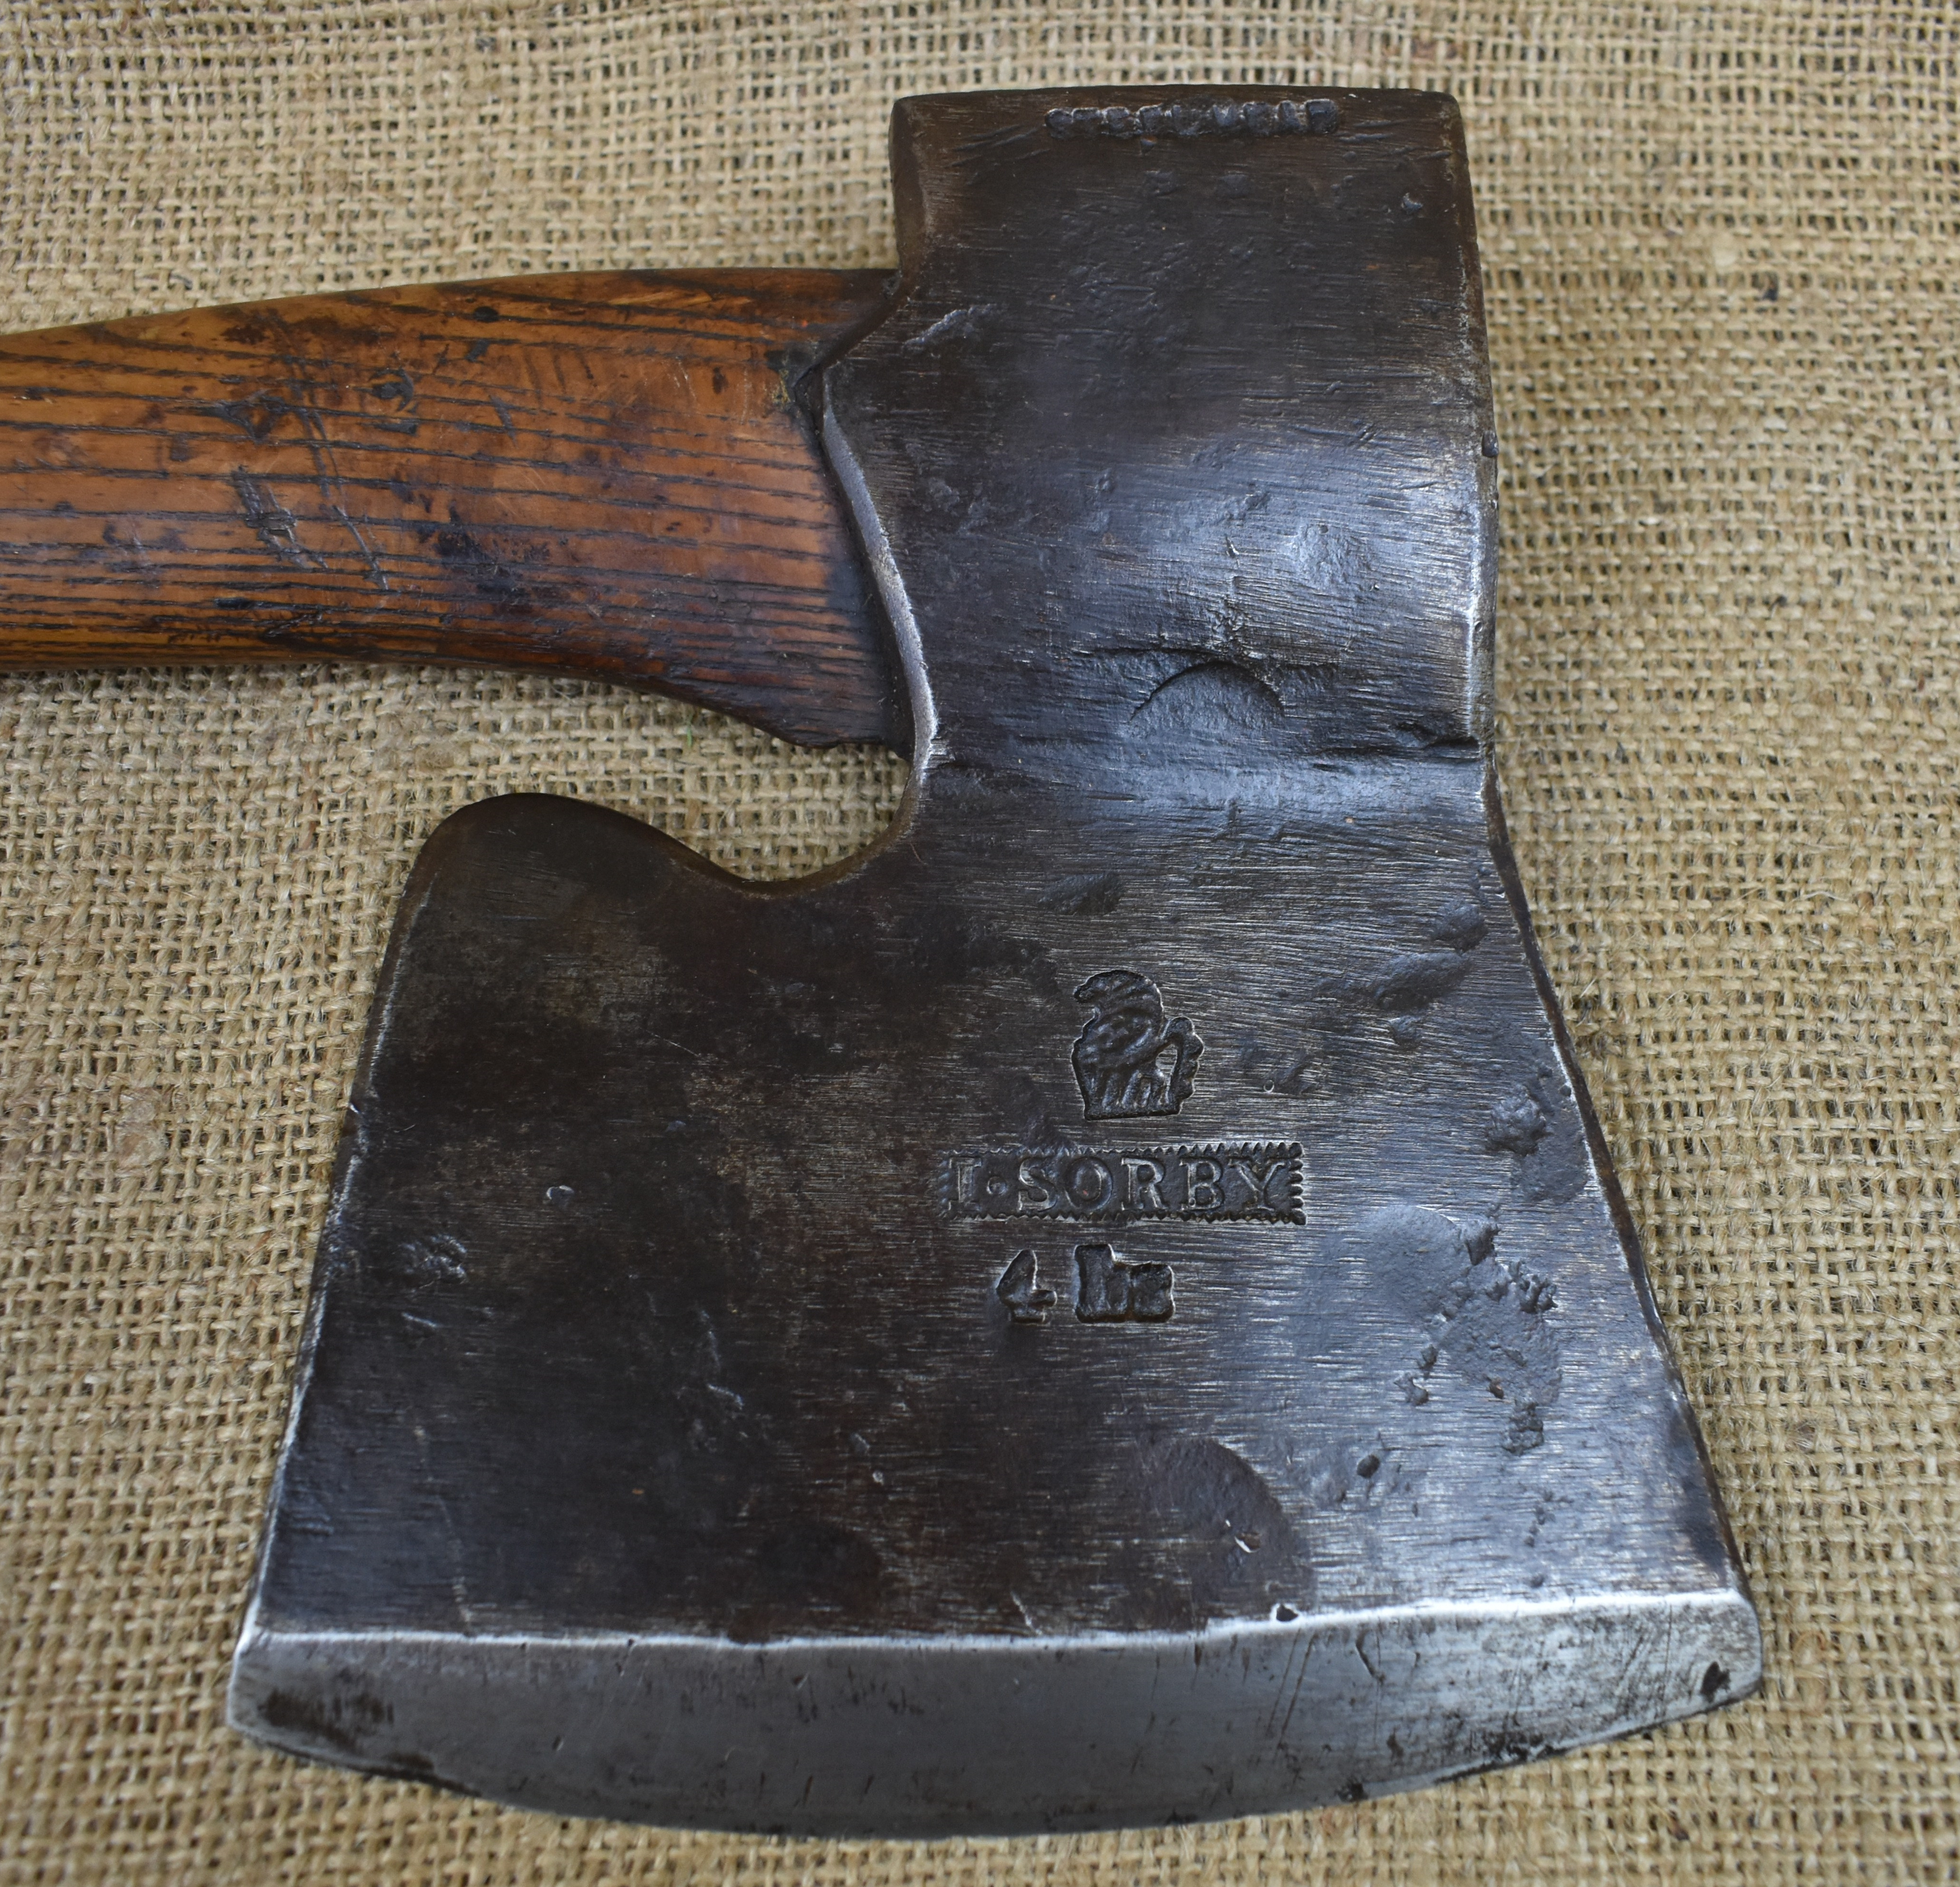 4lb Coachmaker's side axe by I.Sorby